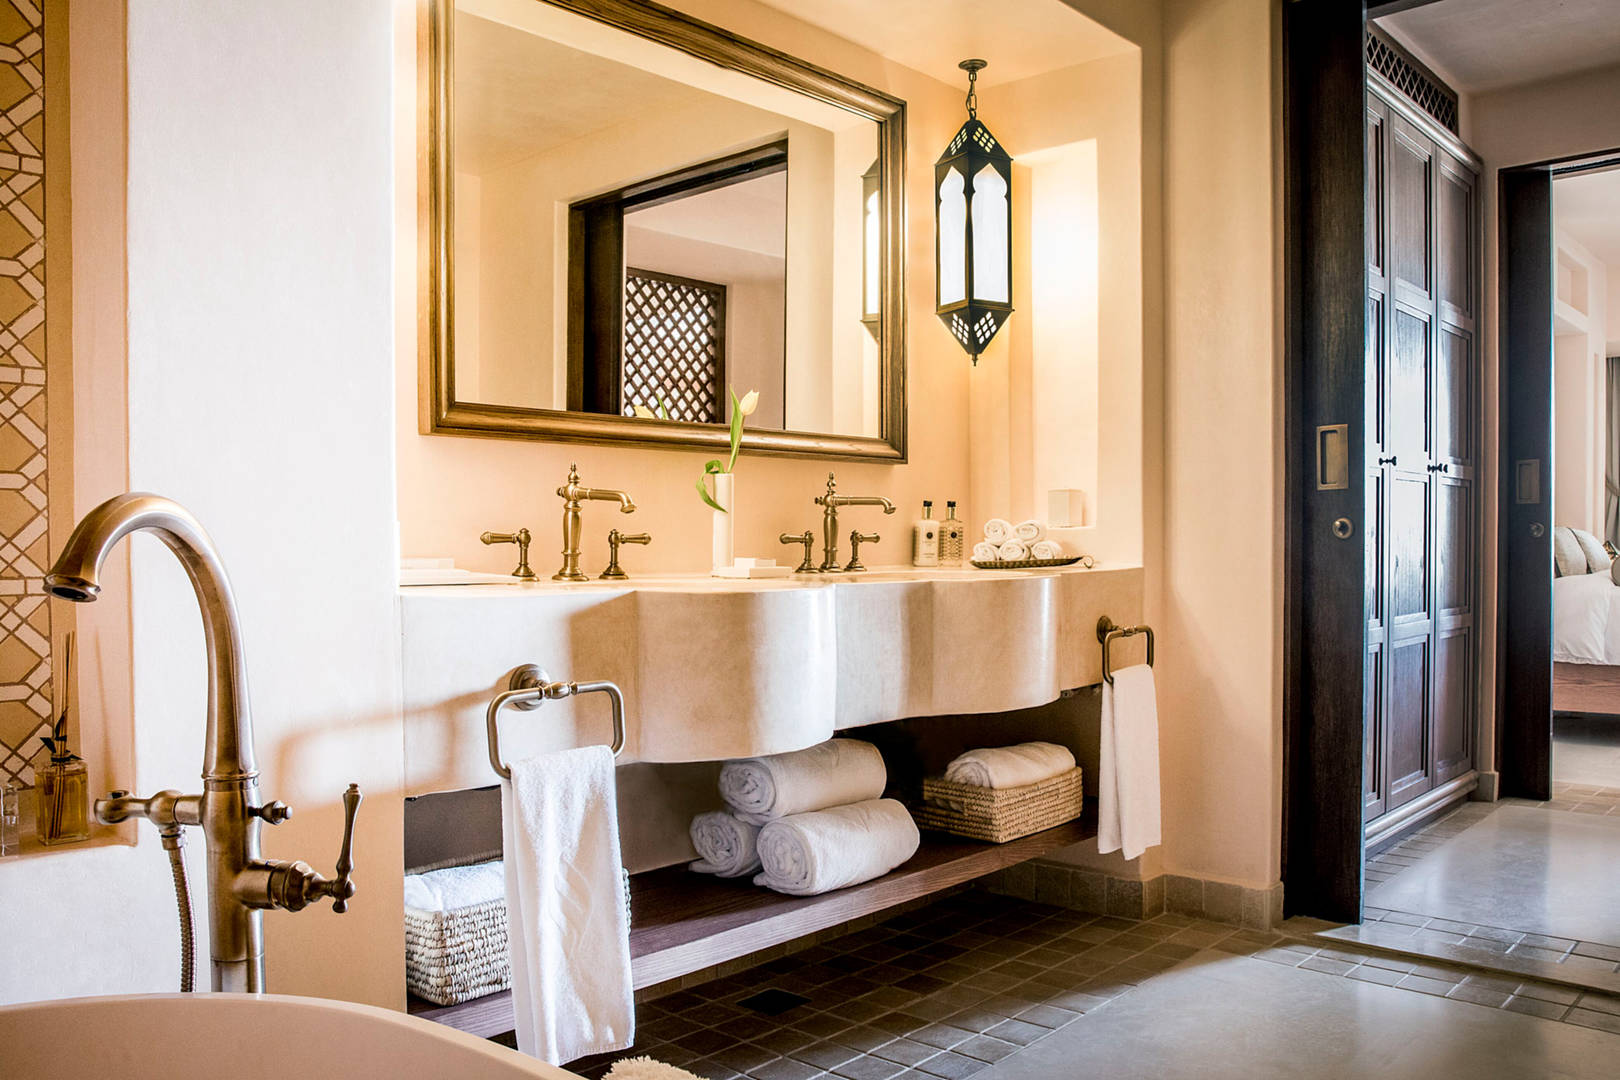 View of the Two Bedroom Suite Bathroom